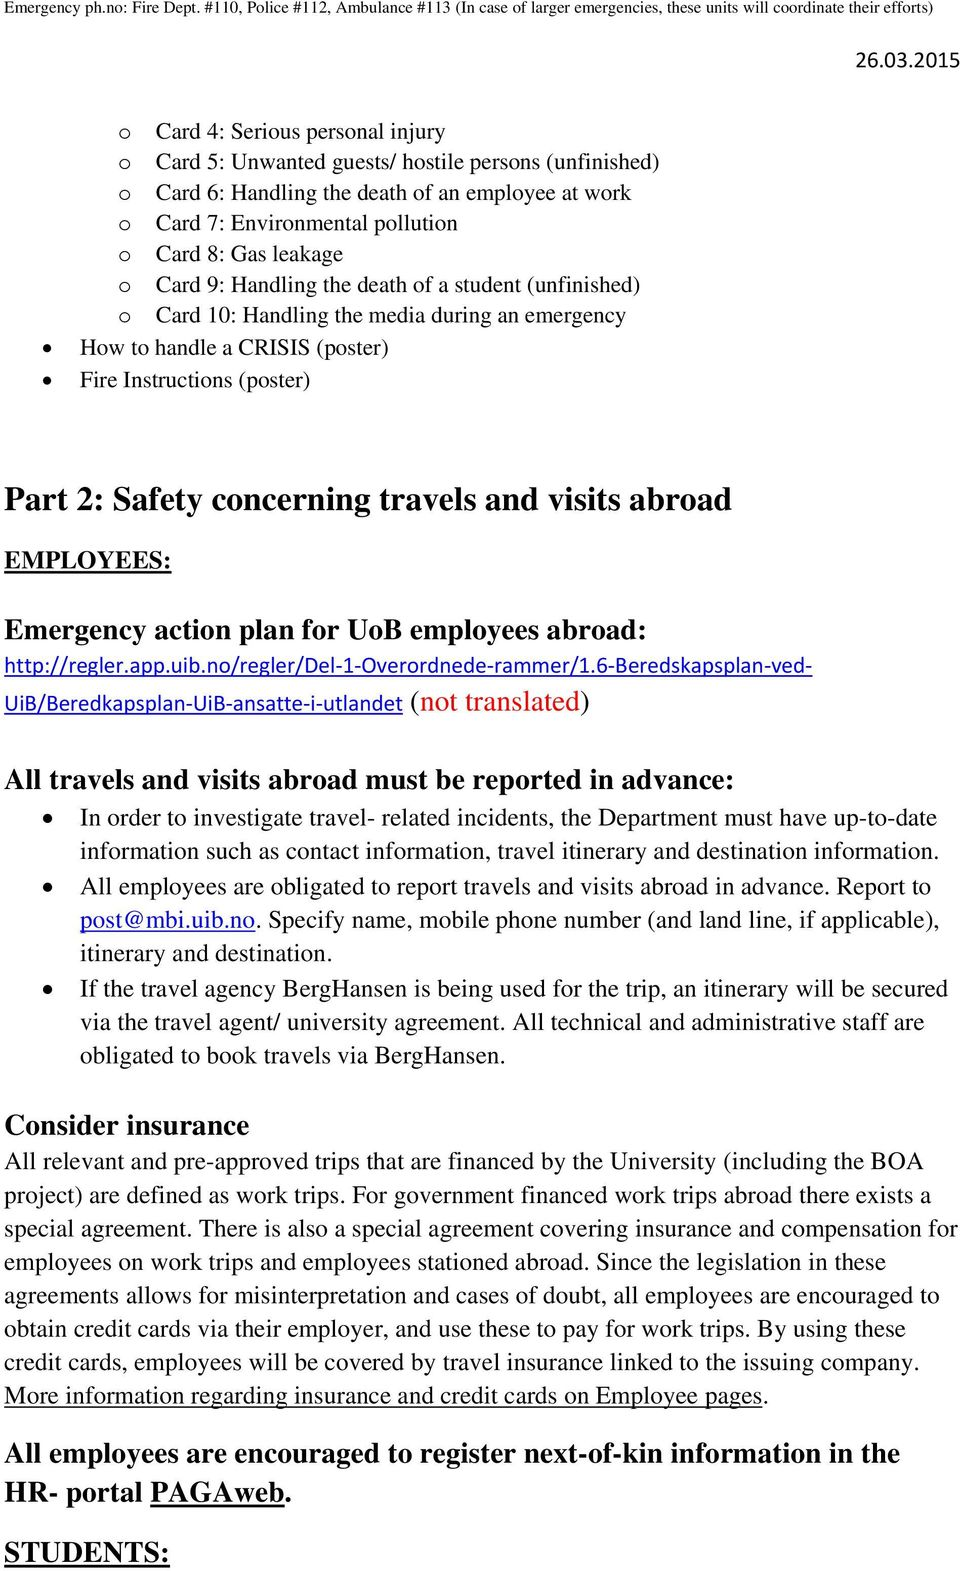 visits abroad EMPLOYEES: Emergency action plan for UoB employees abroad: http://regler.app.uib.no/regler/del-1-overordnede-rammer/1.